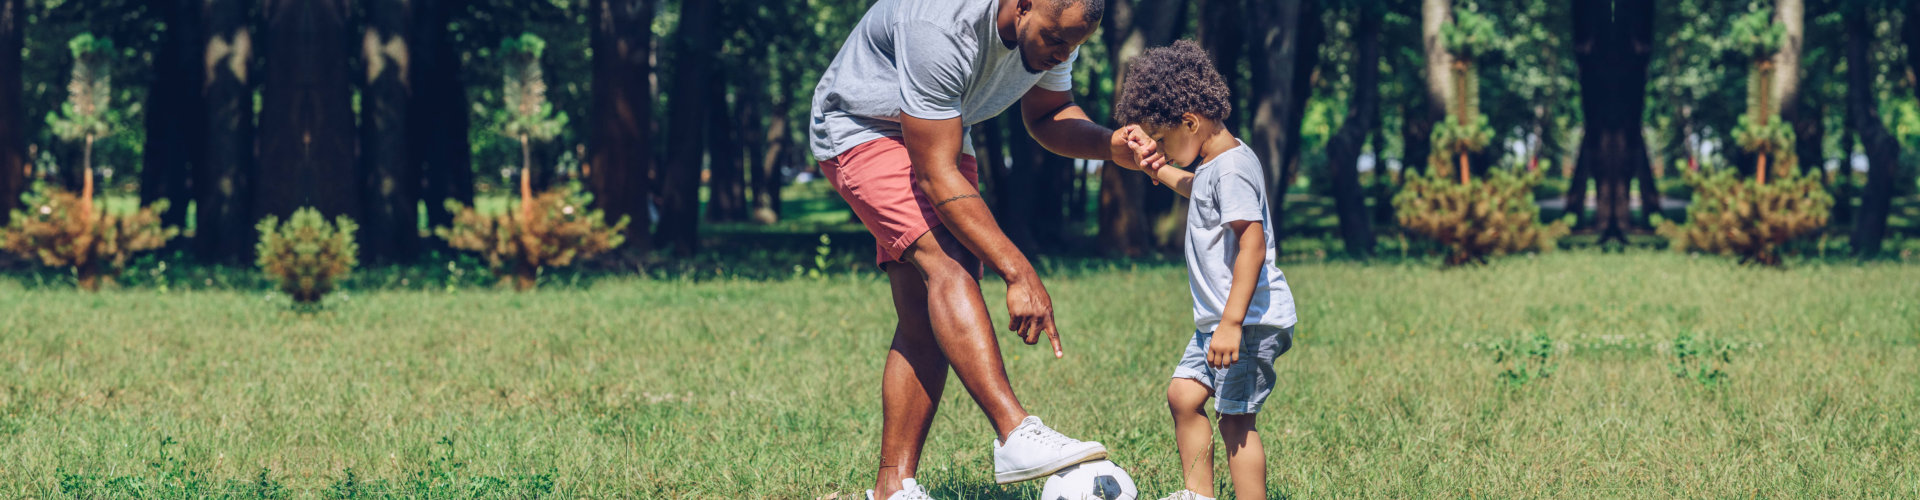 young man teaching adorable son playing football in park